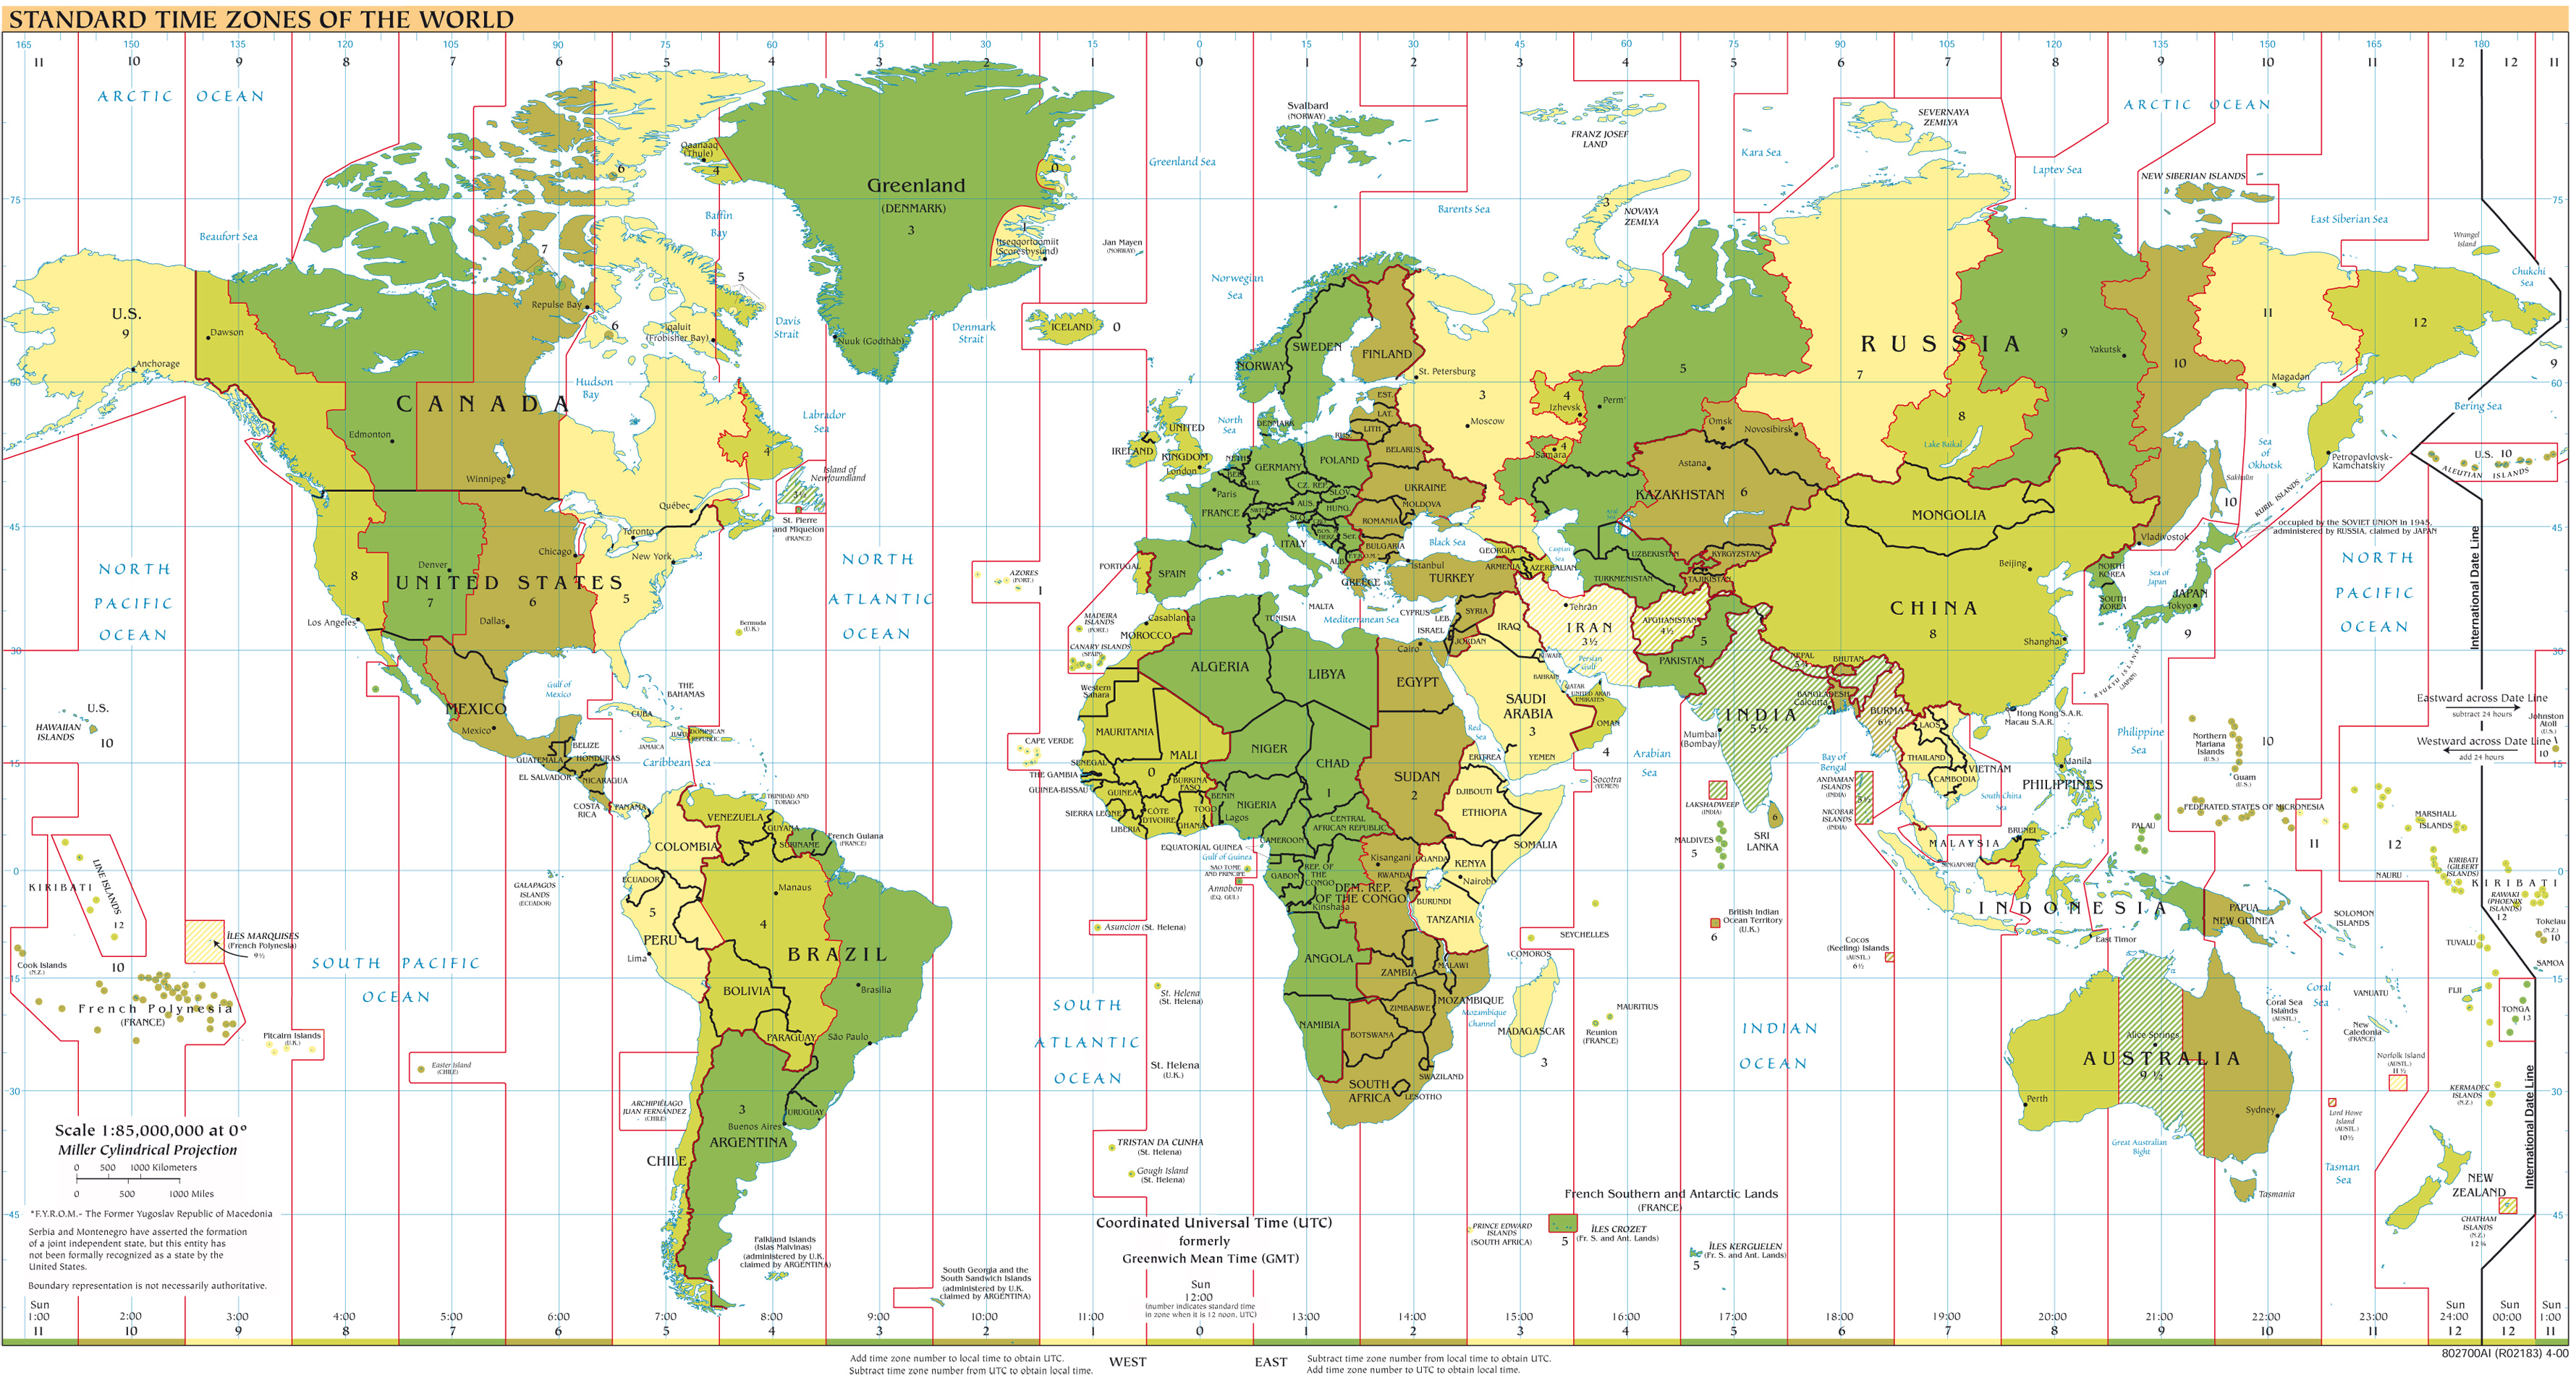 Maps of the World (World maps), Political maps, Geographical maps